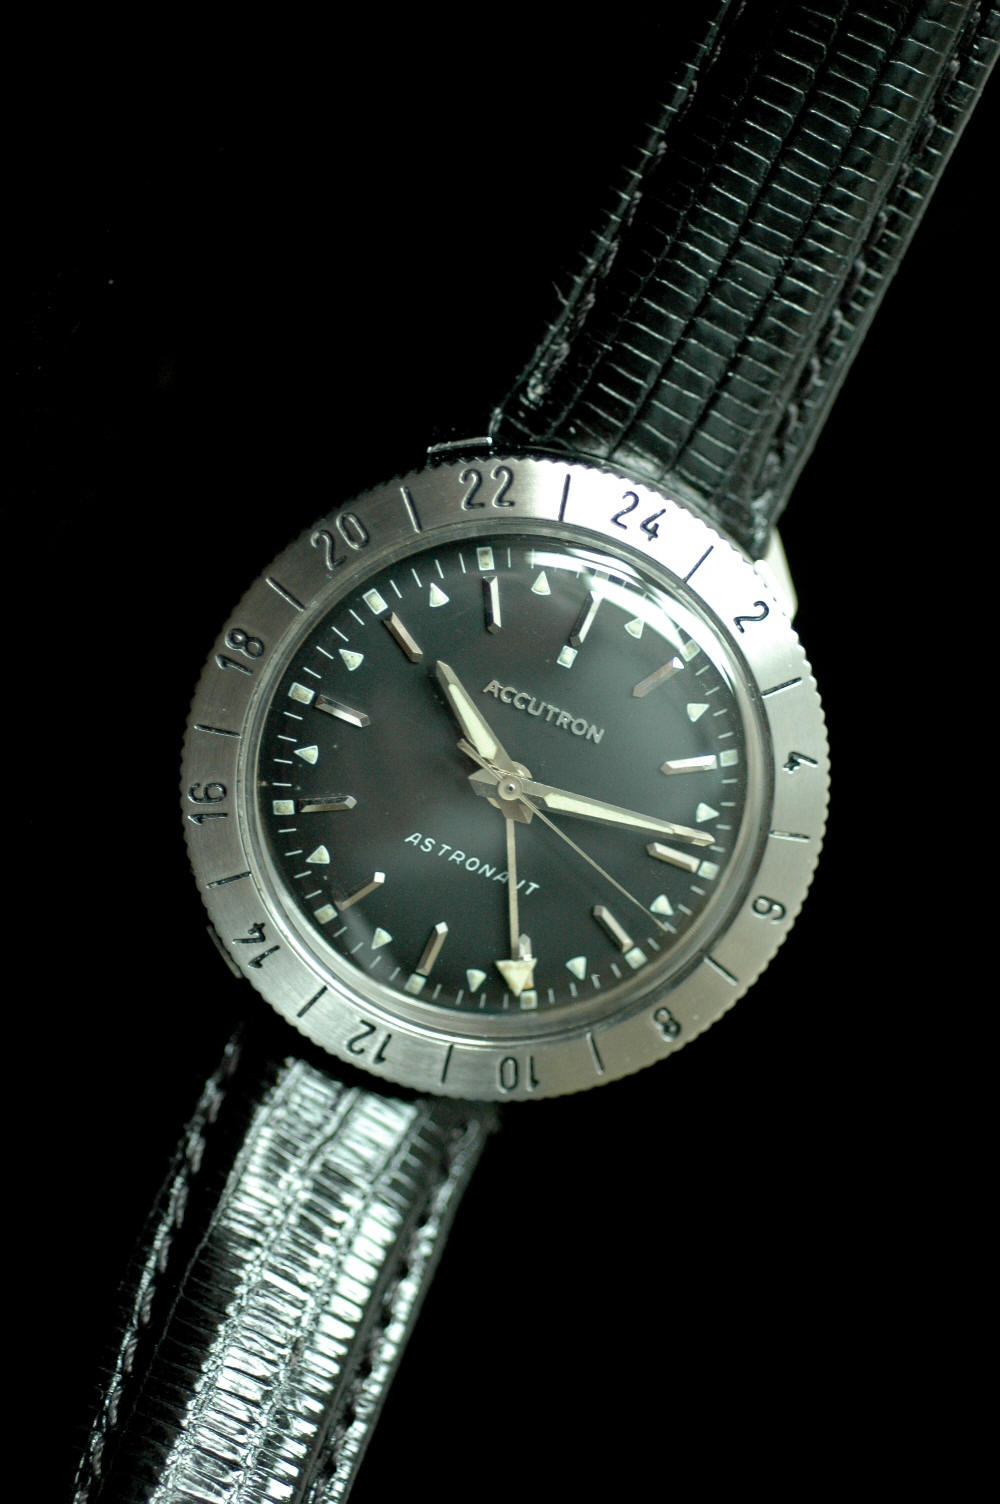 Accutron watches for sale vintage accutron watches for sale for Astronaut watches